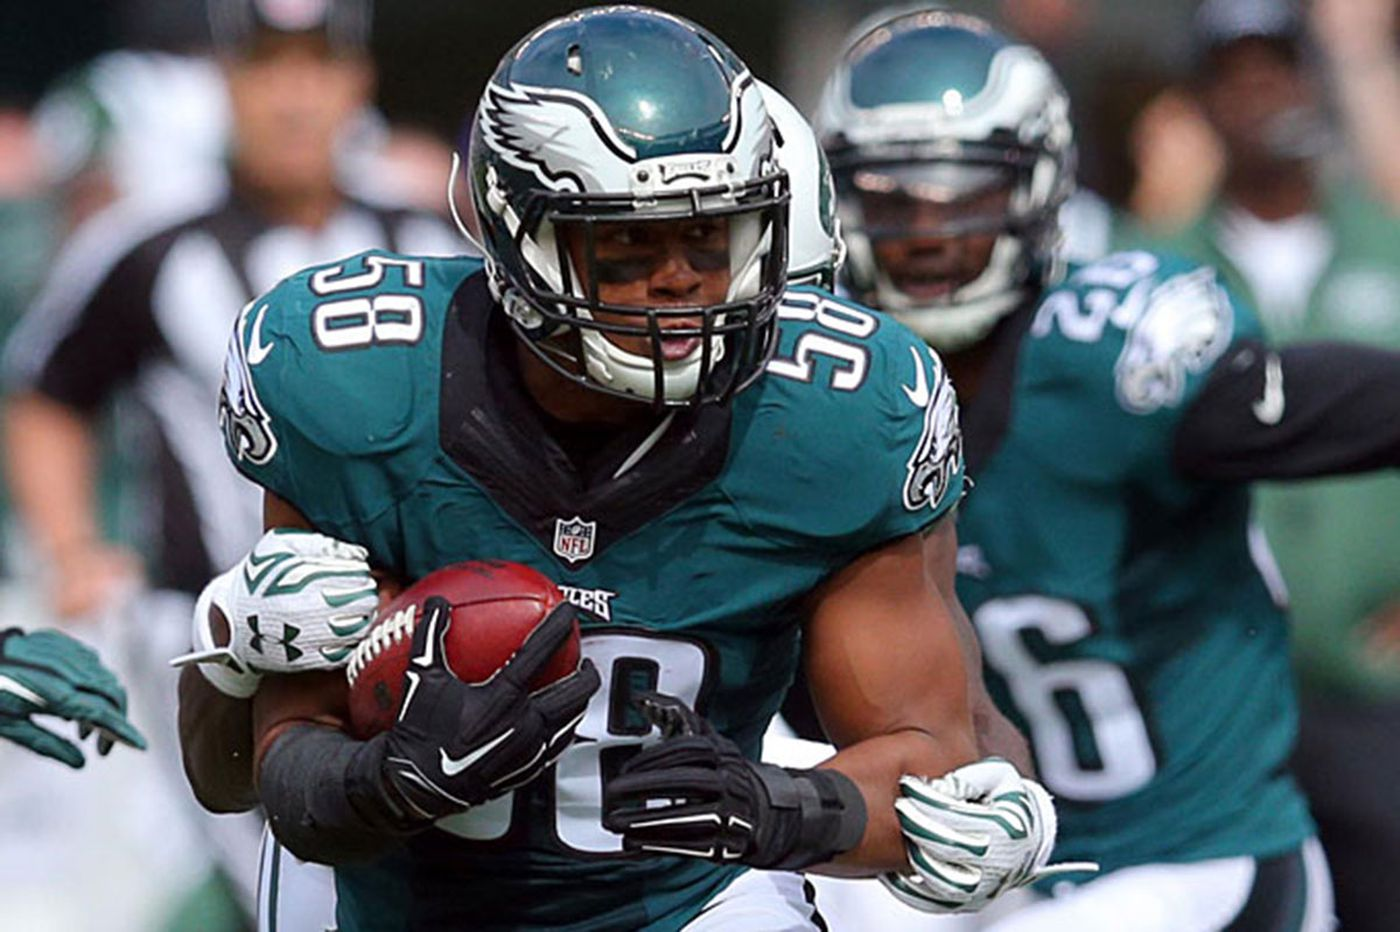 Jordan Hicks earns bigger role with Eagles